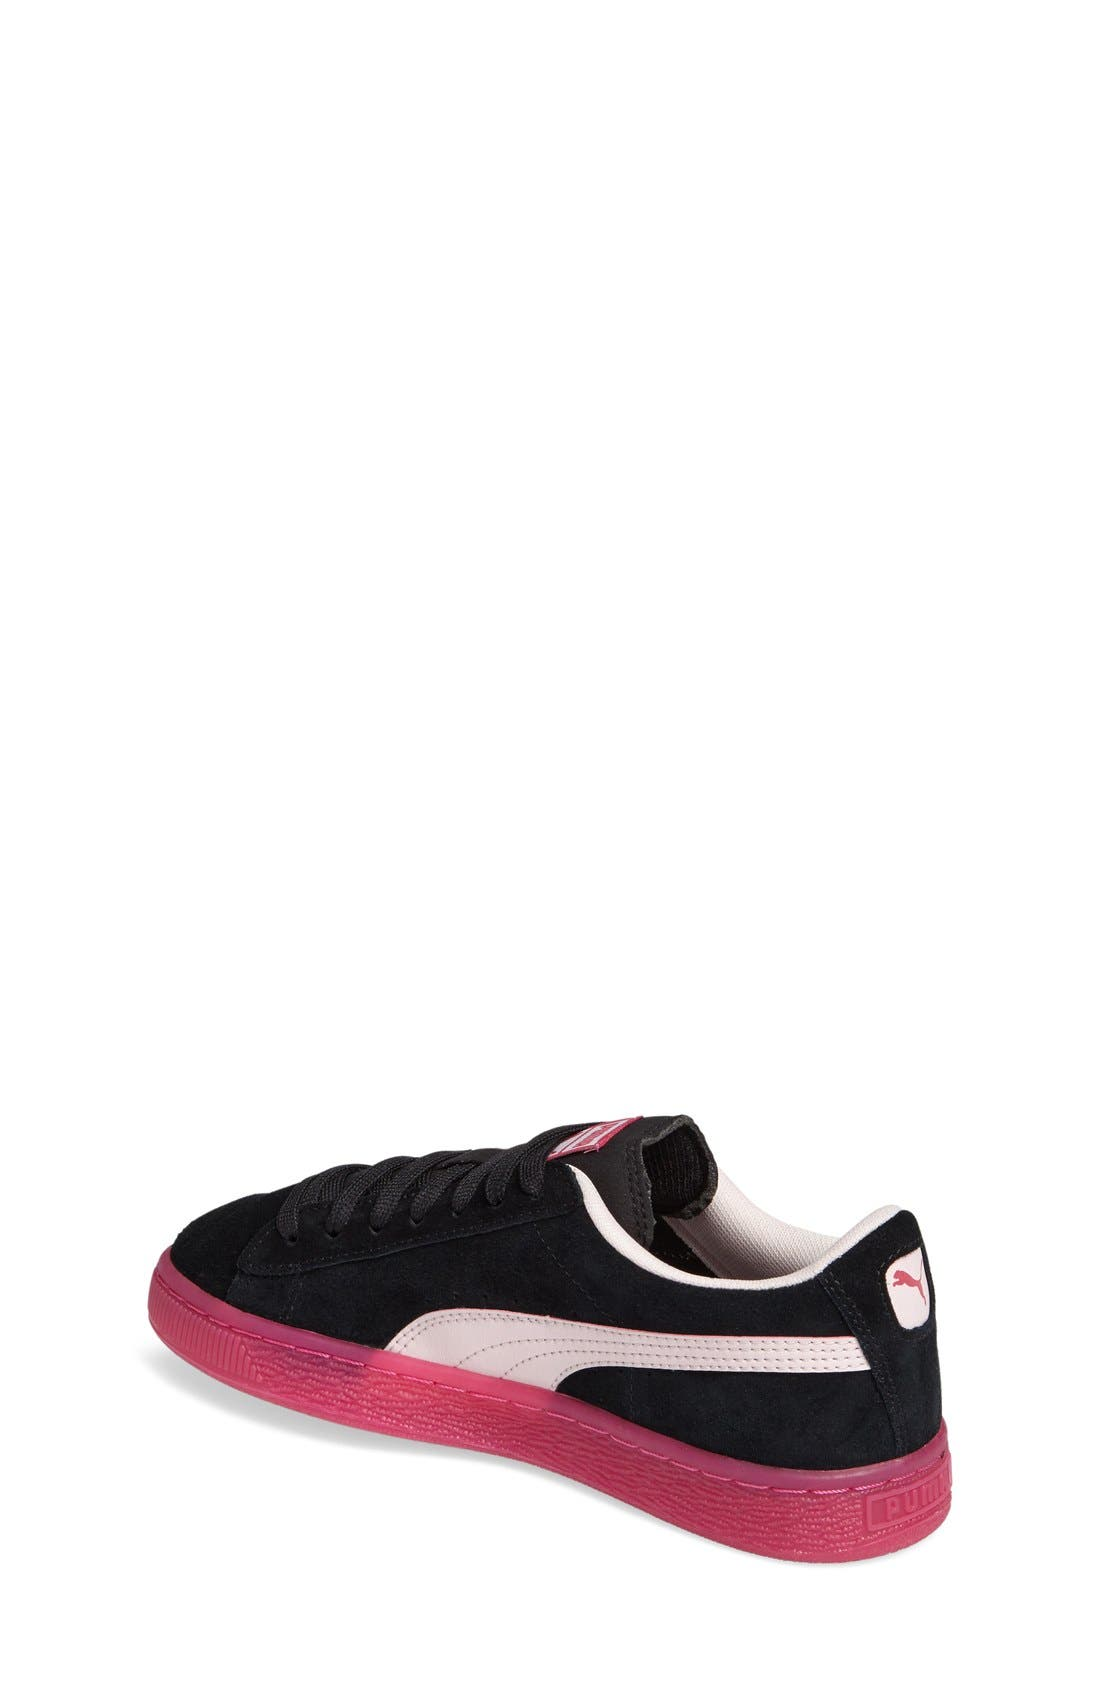 Alternate Image 2  - PUMA LFS Iced Jr Sneaker (Toddler, Little Kid & Big Kid)